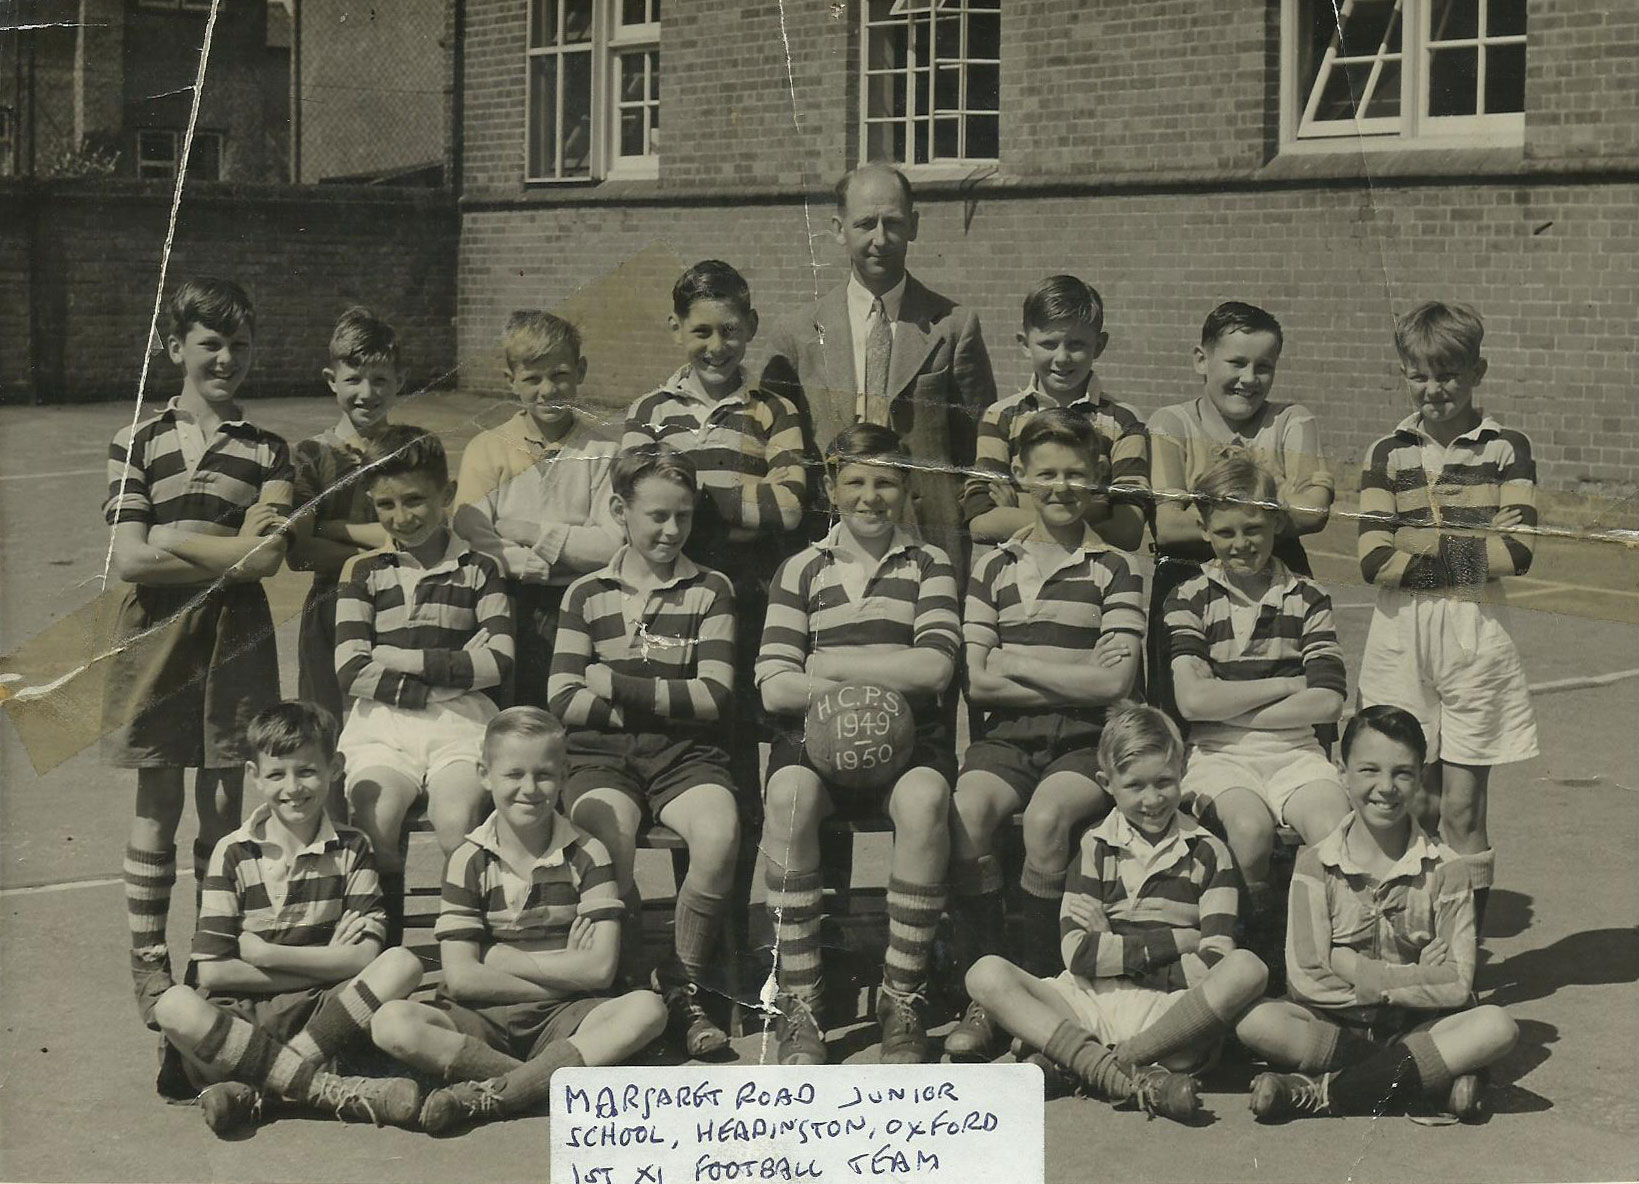 Margaret Road football team